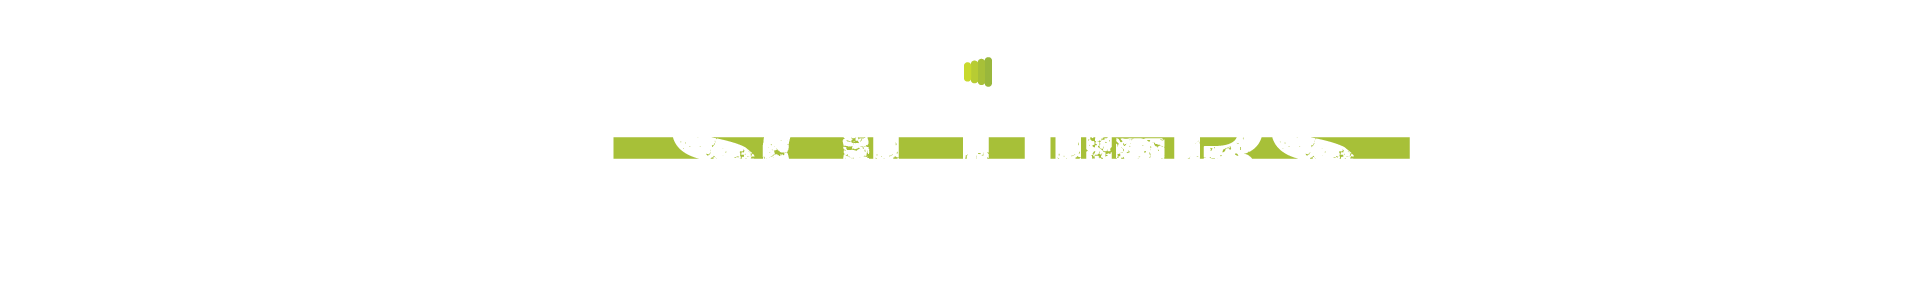 The-Garage-Gym-Teen-Soldiers-Program-Website-Banner-1920x300-transparent